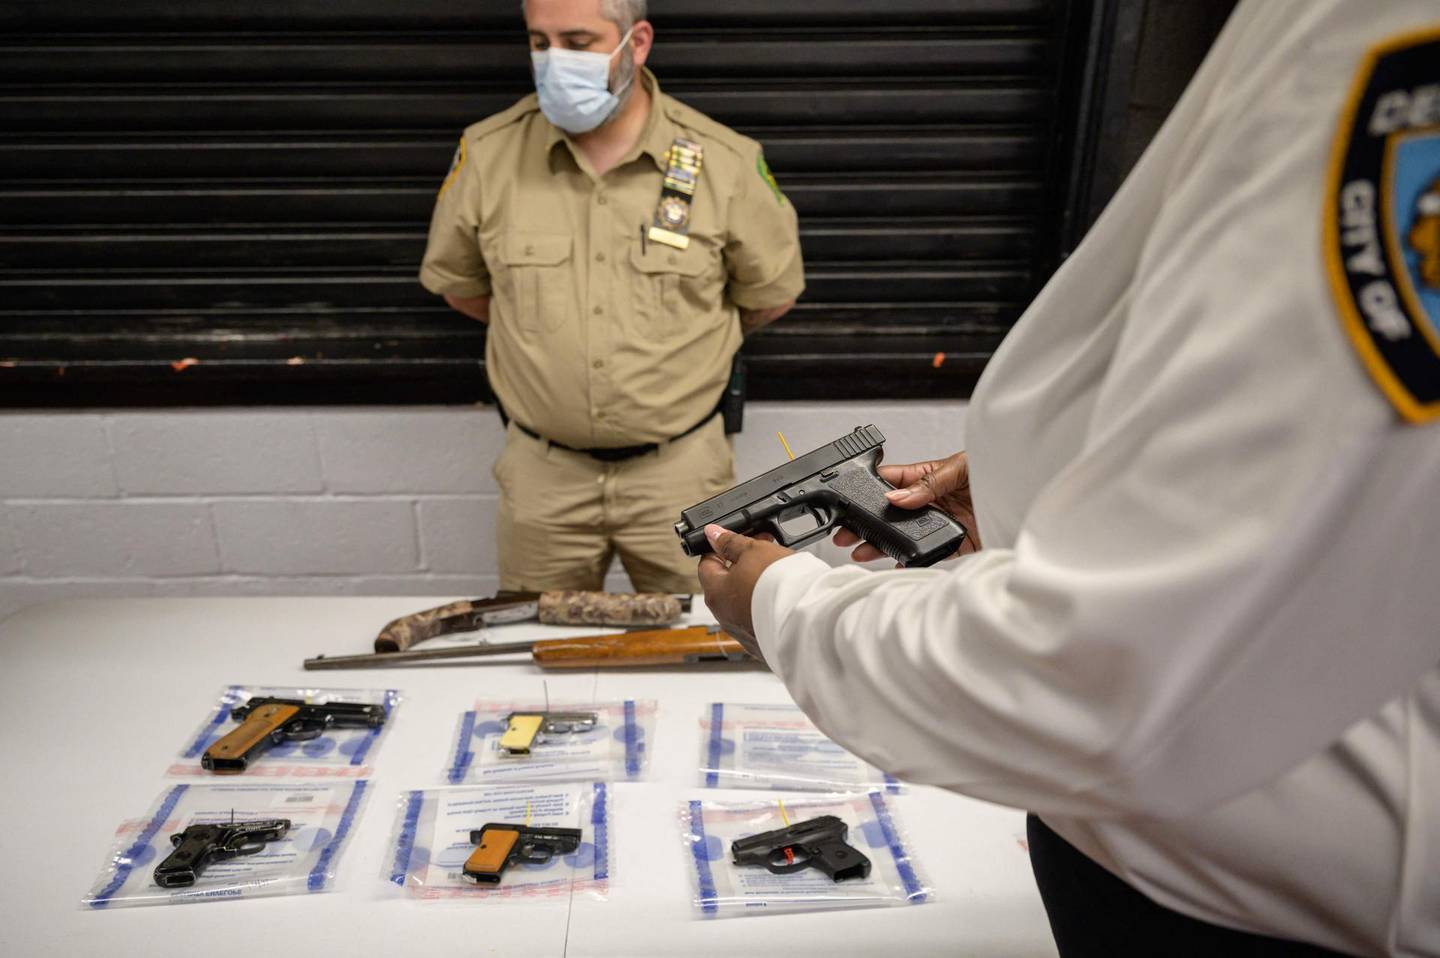 """(FILES) In this file photo taken on May 22, 2021, a Glock 17 pistol, or handgun, is displayed during a gun 'buyback' event held by the New York Police Department (NYPD) and the office of the Attorney General, in the New York borough of Brooklyn. A dozen people were killed and about 50 injured in shootings across the United States over the weekend, after President Joe Biden last month branded the country's gun violence an """"epidemic."""" / AFP / Ed JONES"""